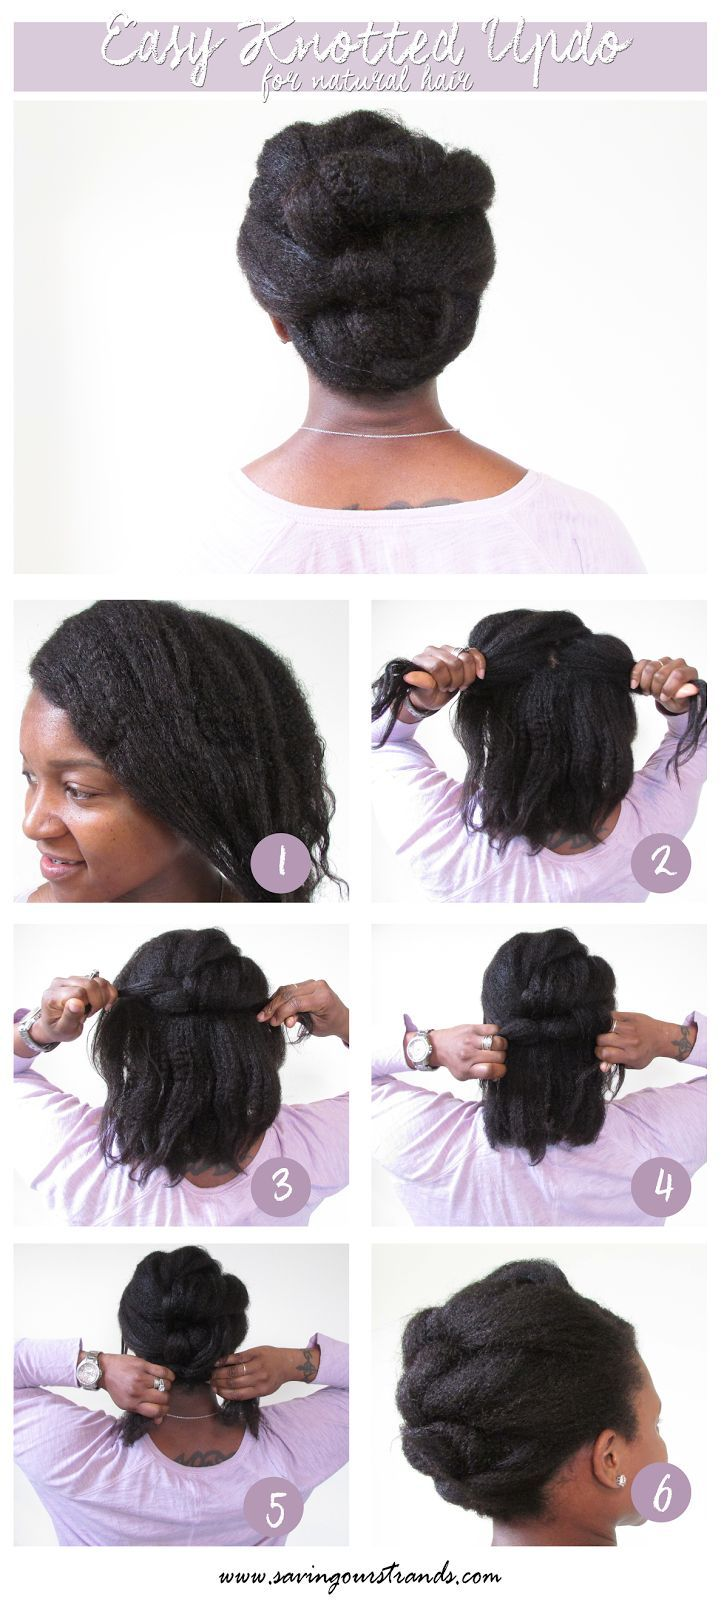 16 Hairstyle Ideas For Second (Or Third) Day Hair | Manes ...